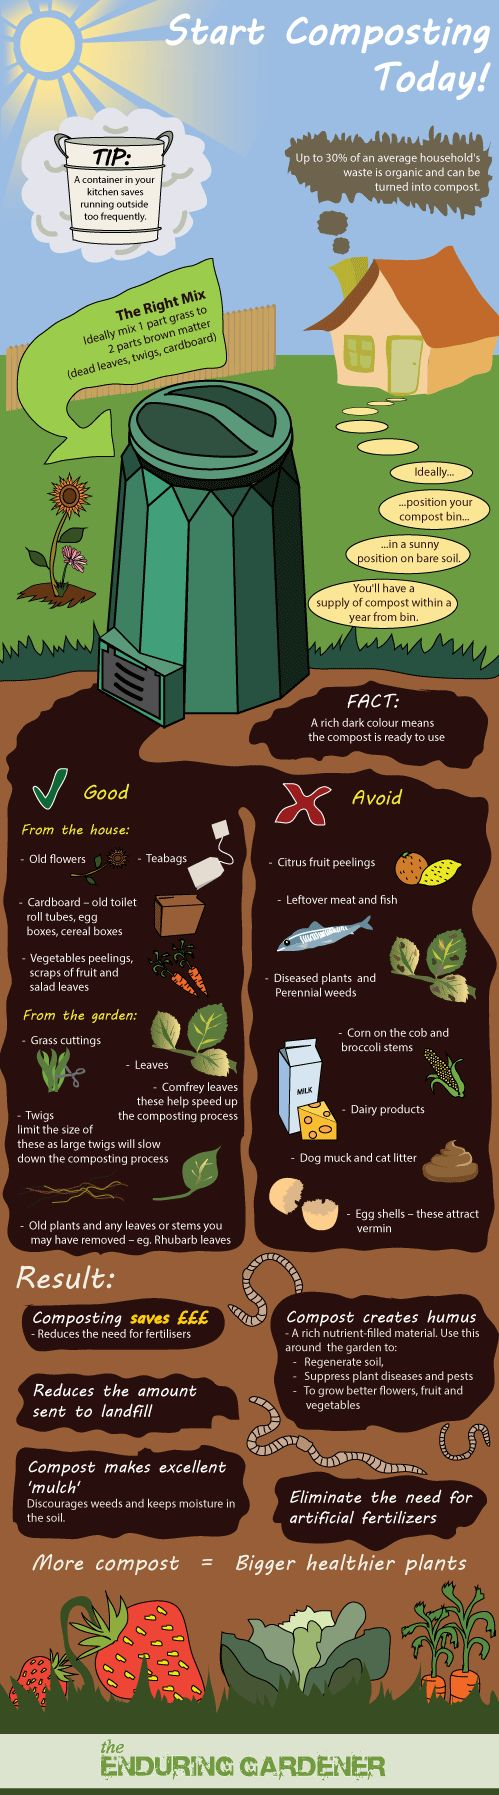 How To Compost [Infographic] - Start Today!